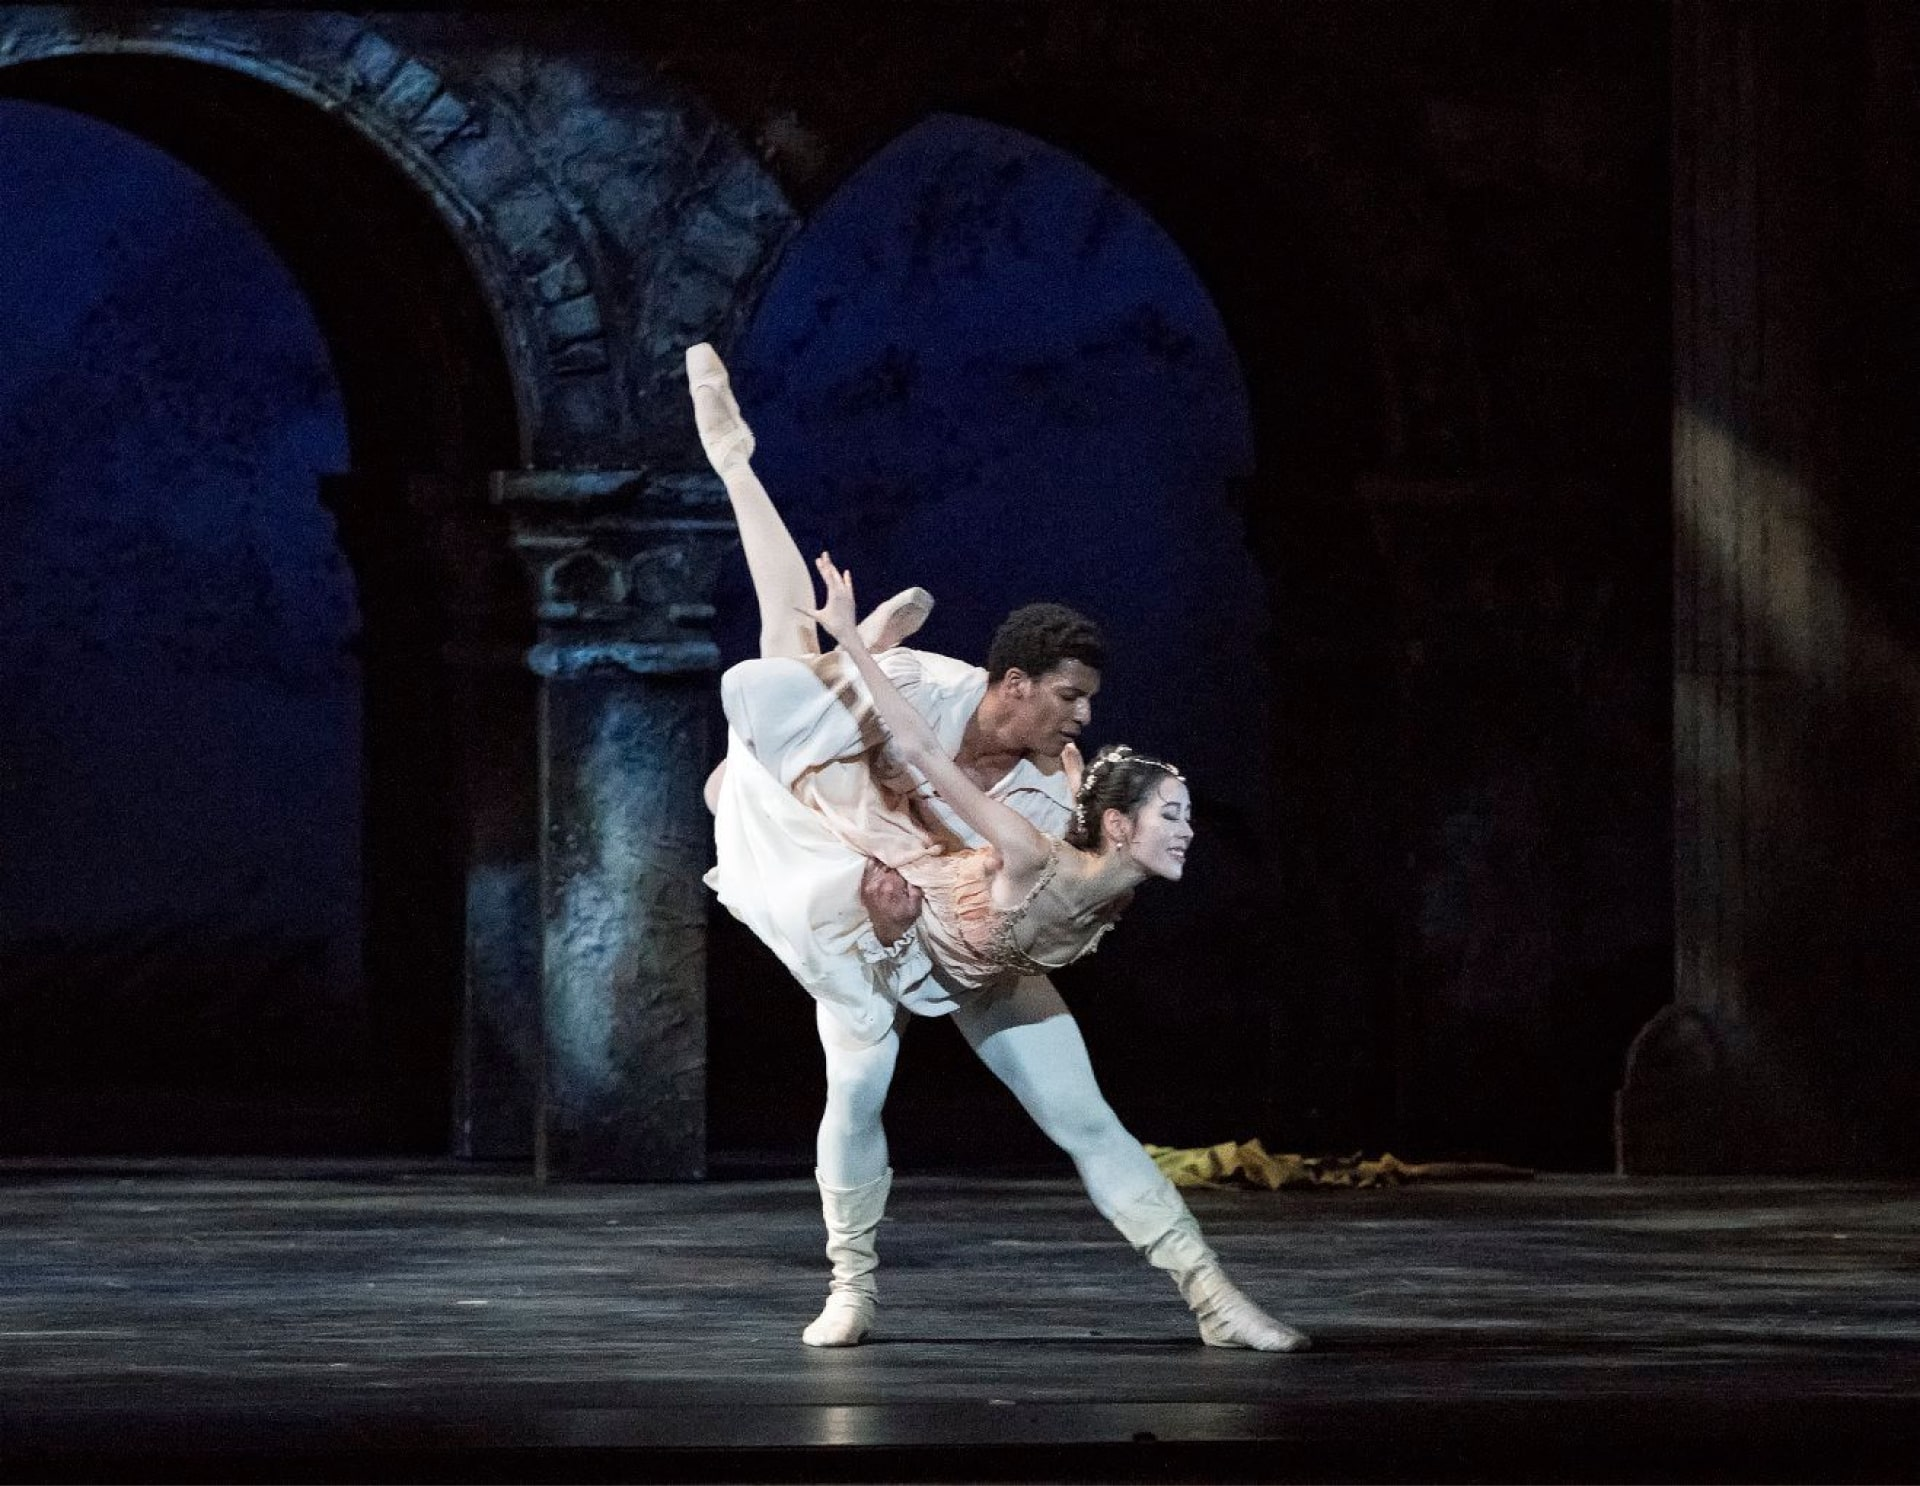 Dancer in white holds ballerina aloft on dappled stage in front of bridge arches and blue sky.